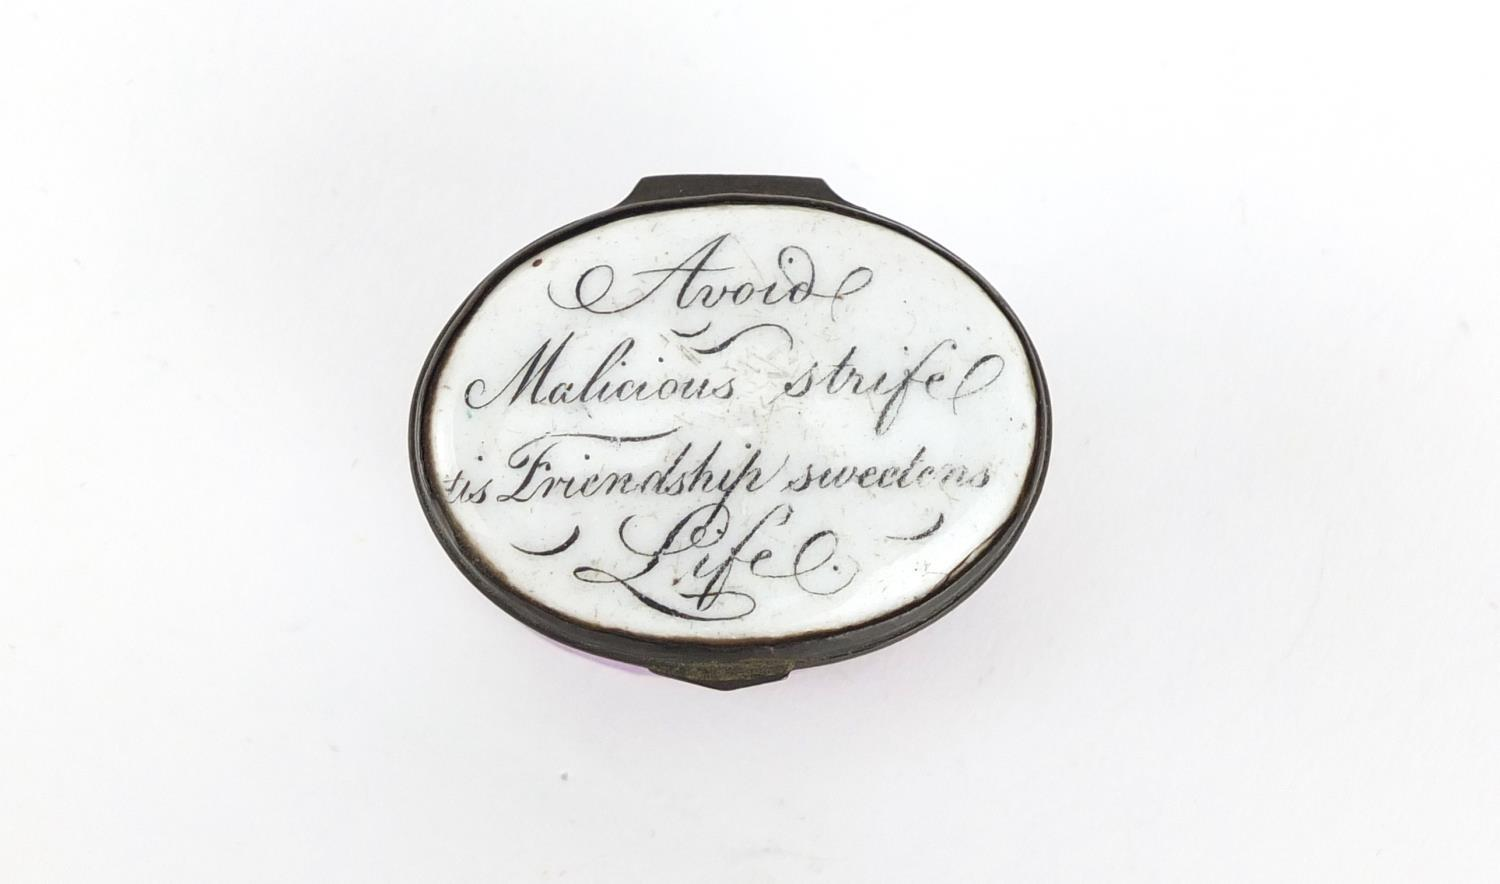 Lot 42 - 18th century Bilston enamel patch box, the hinged lid inscribed 'Avoid Malicious Strife Tis